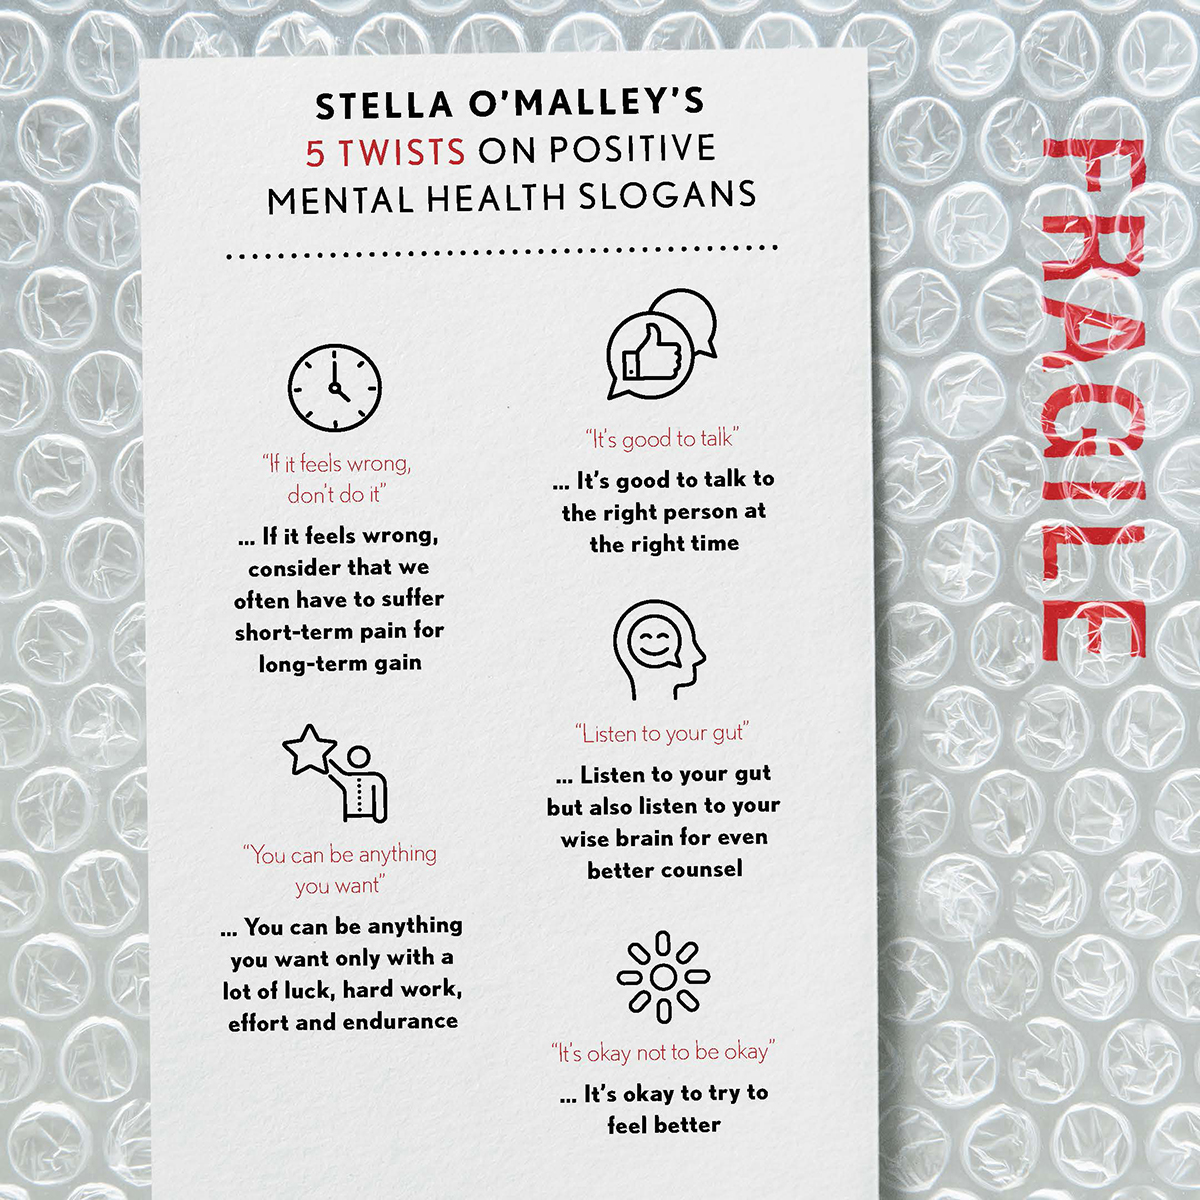 Stella O'Malley's 5 twists on positive mental health slogans